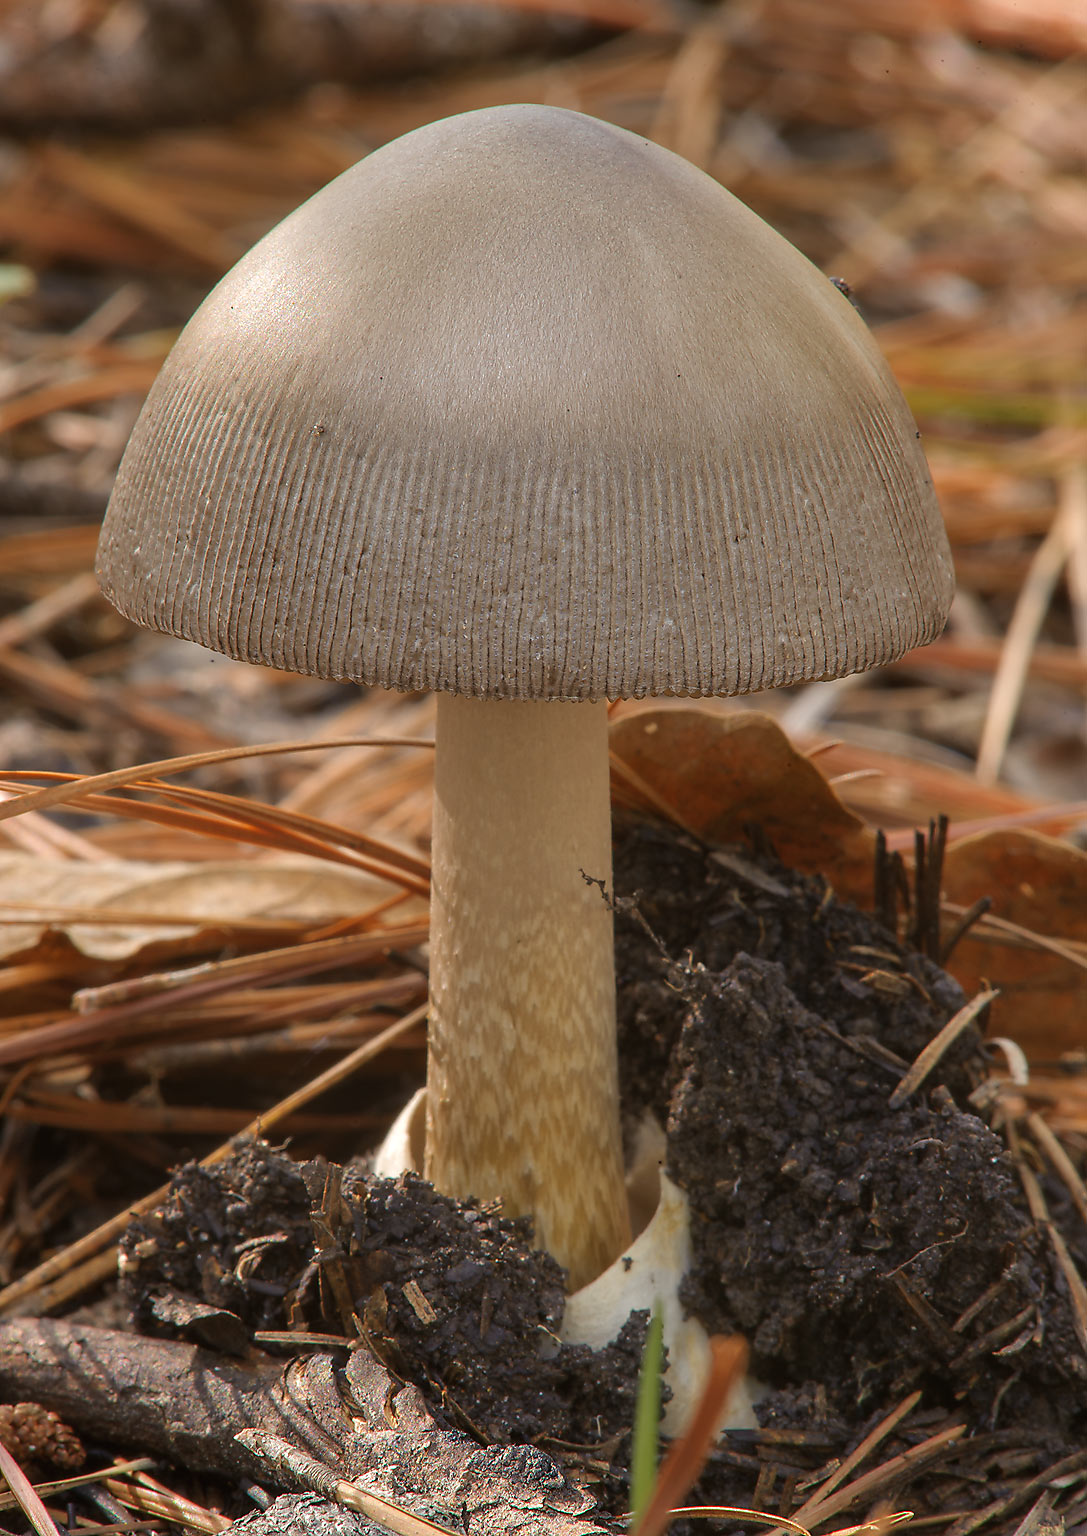 Amanita fulva like mushroom on Little Lake Creek...National Forest. Richards, Texas